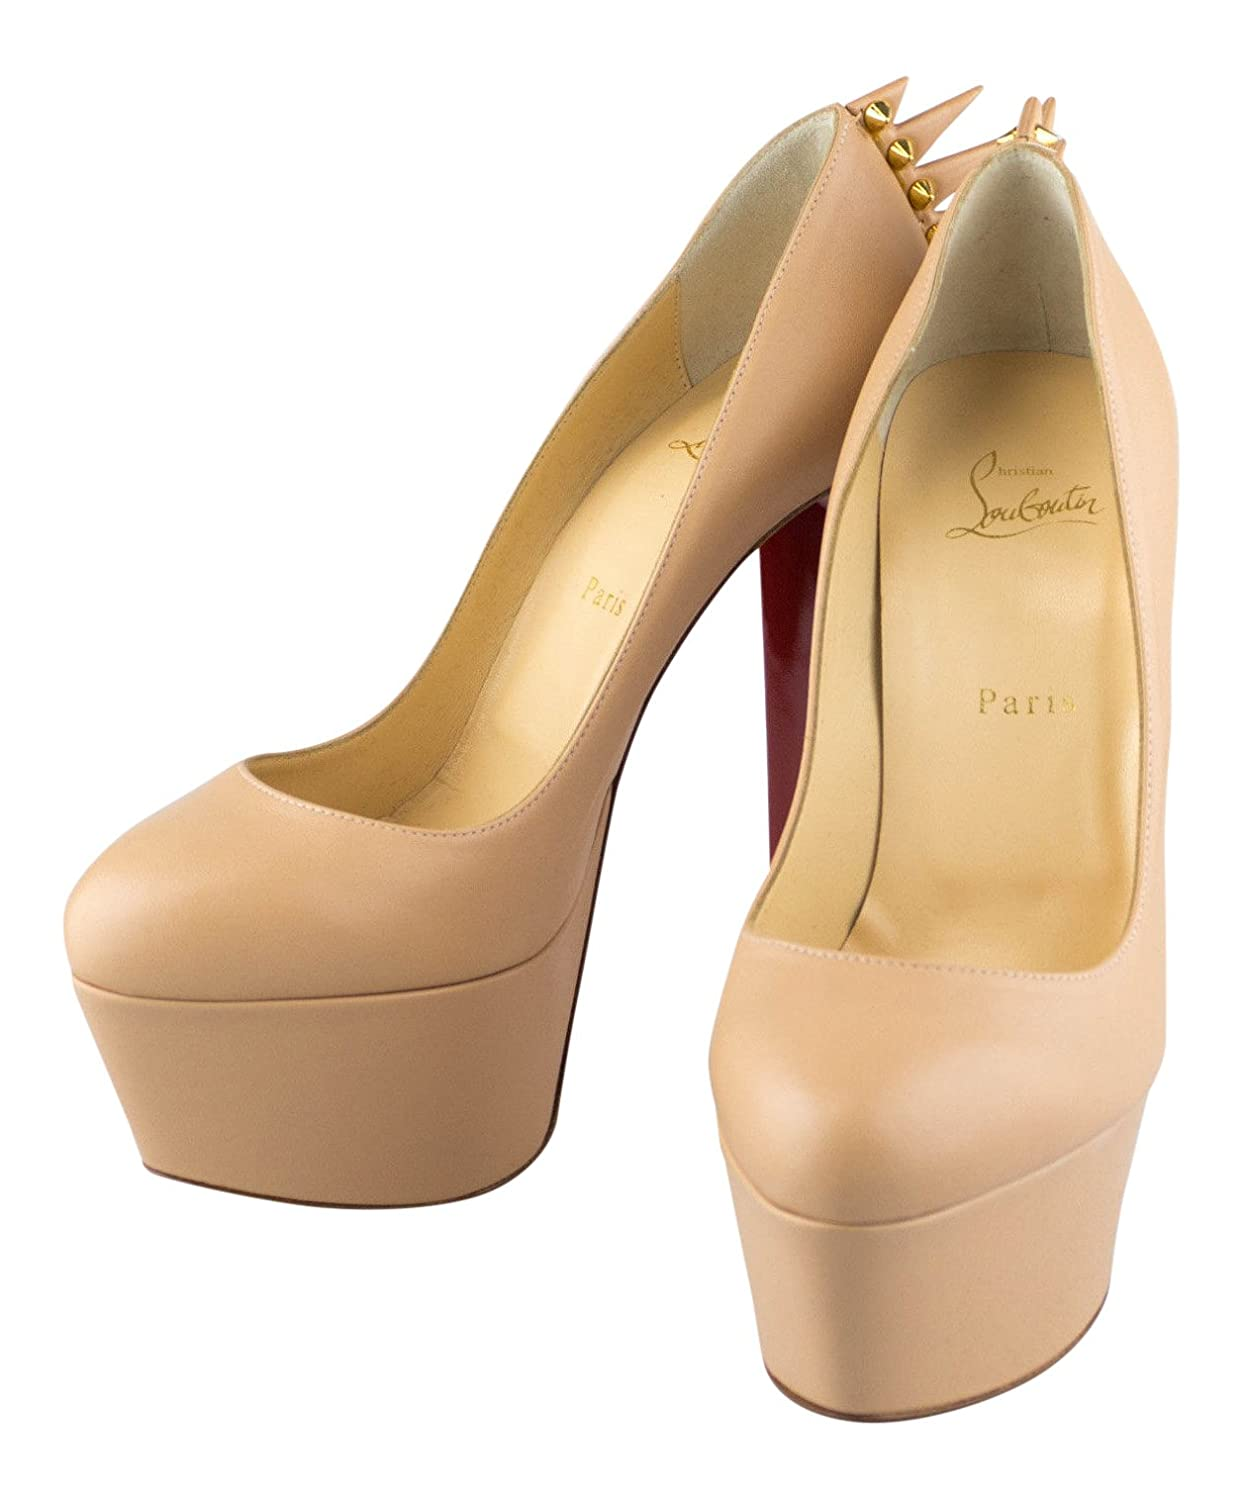 separation shoes bb177 a82ca Amazon.com : CHRISTIAN LOUBOUTIN Nude Leather Electropump ...